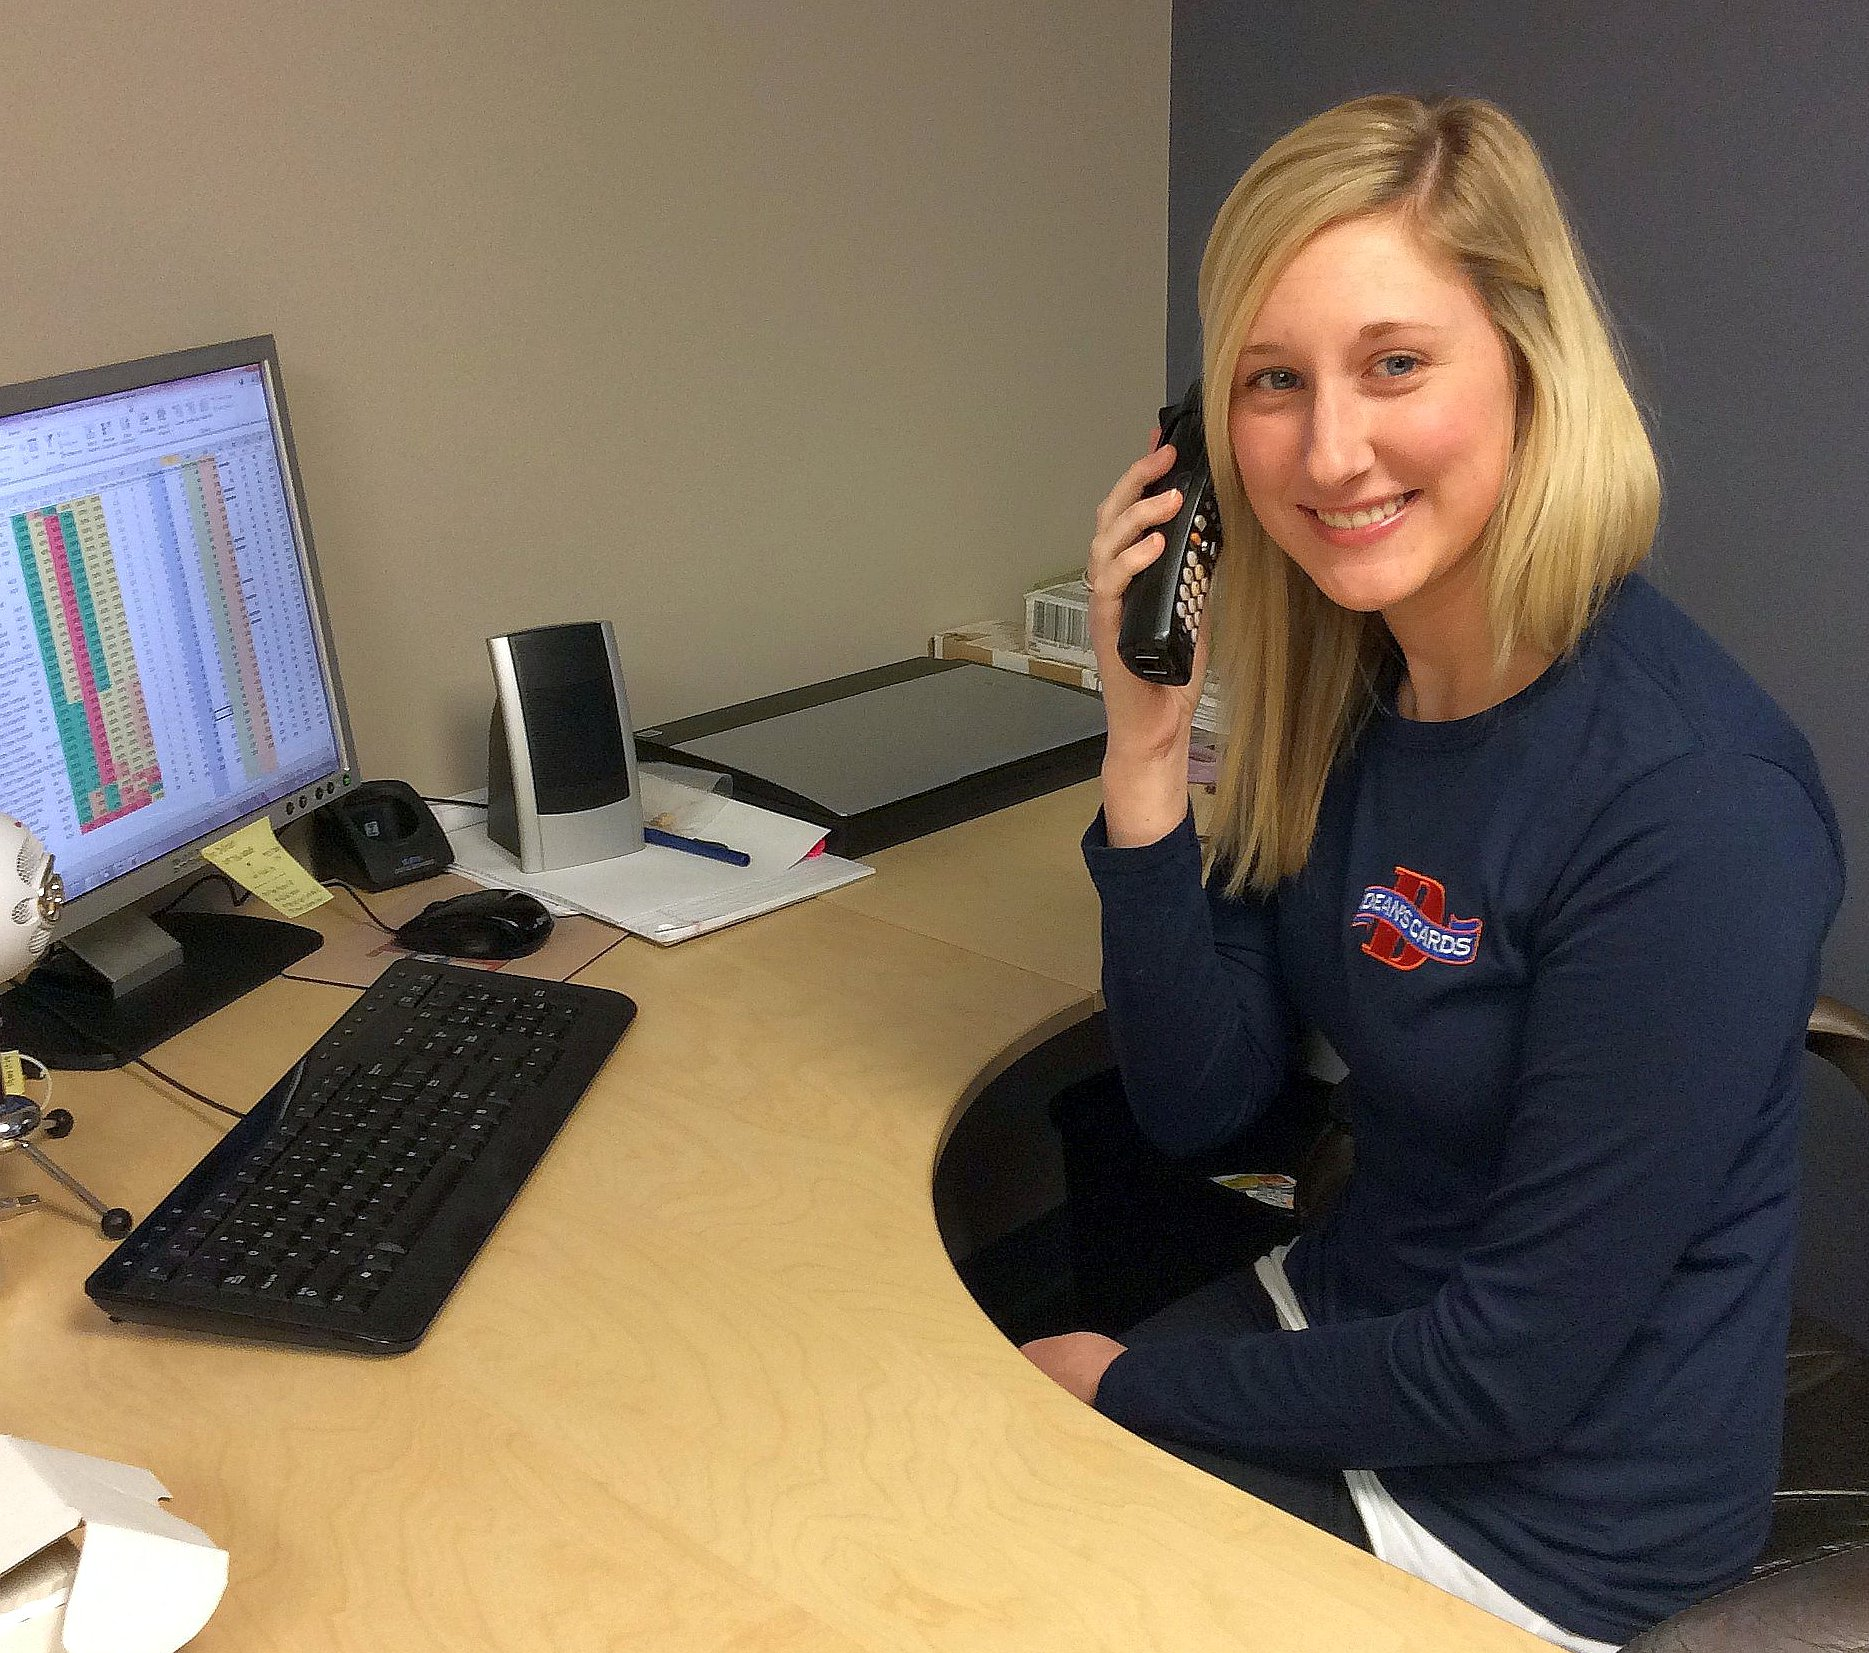 Our Purchasing manager Elana, working a deal on the phones